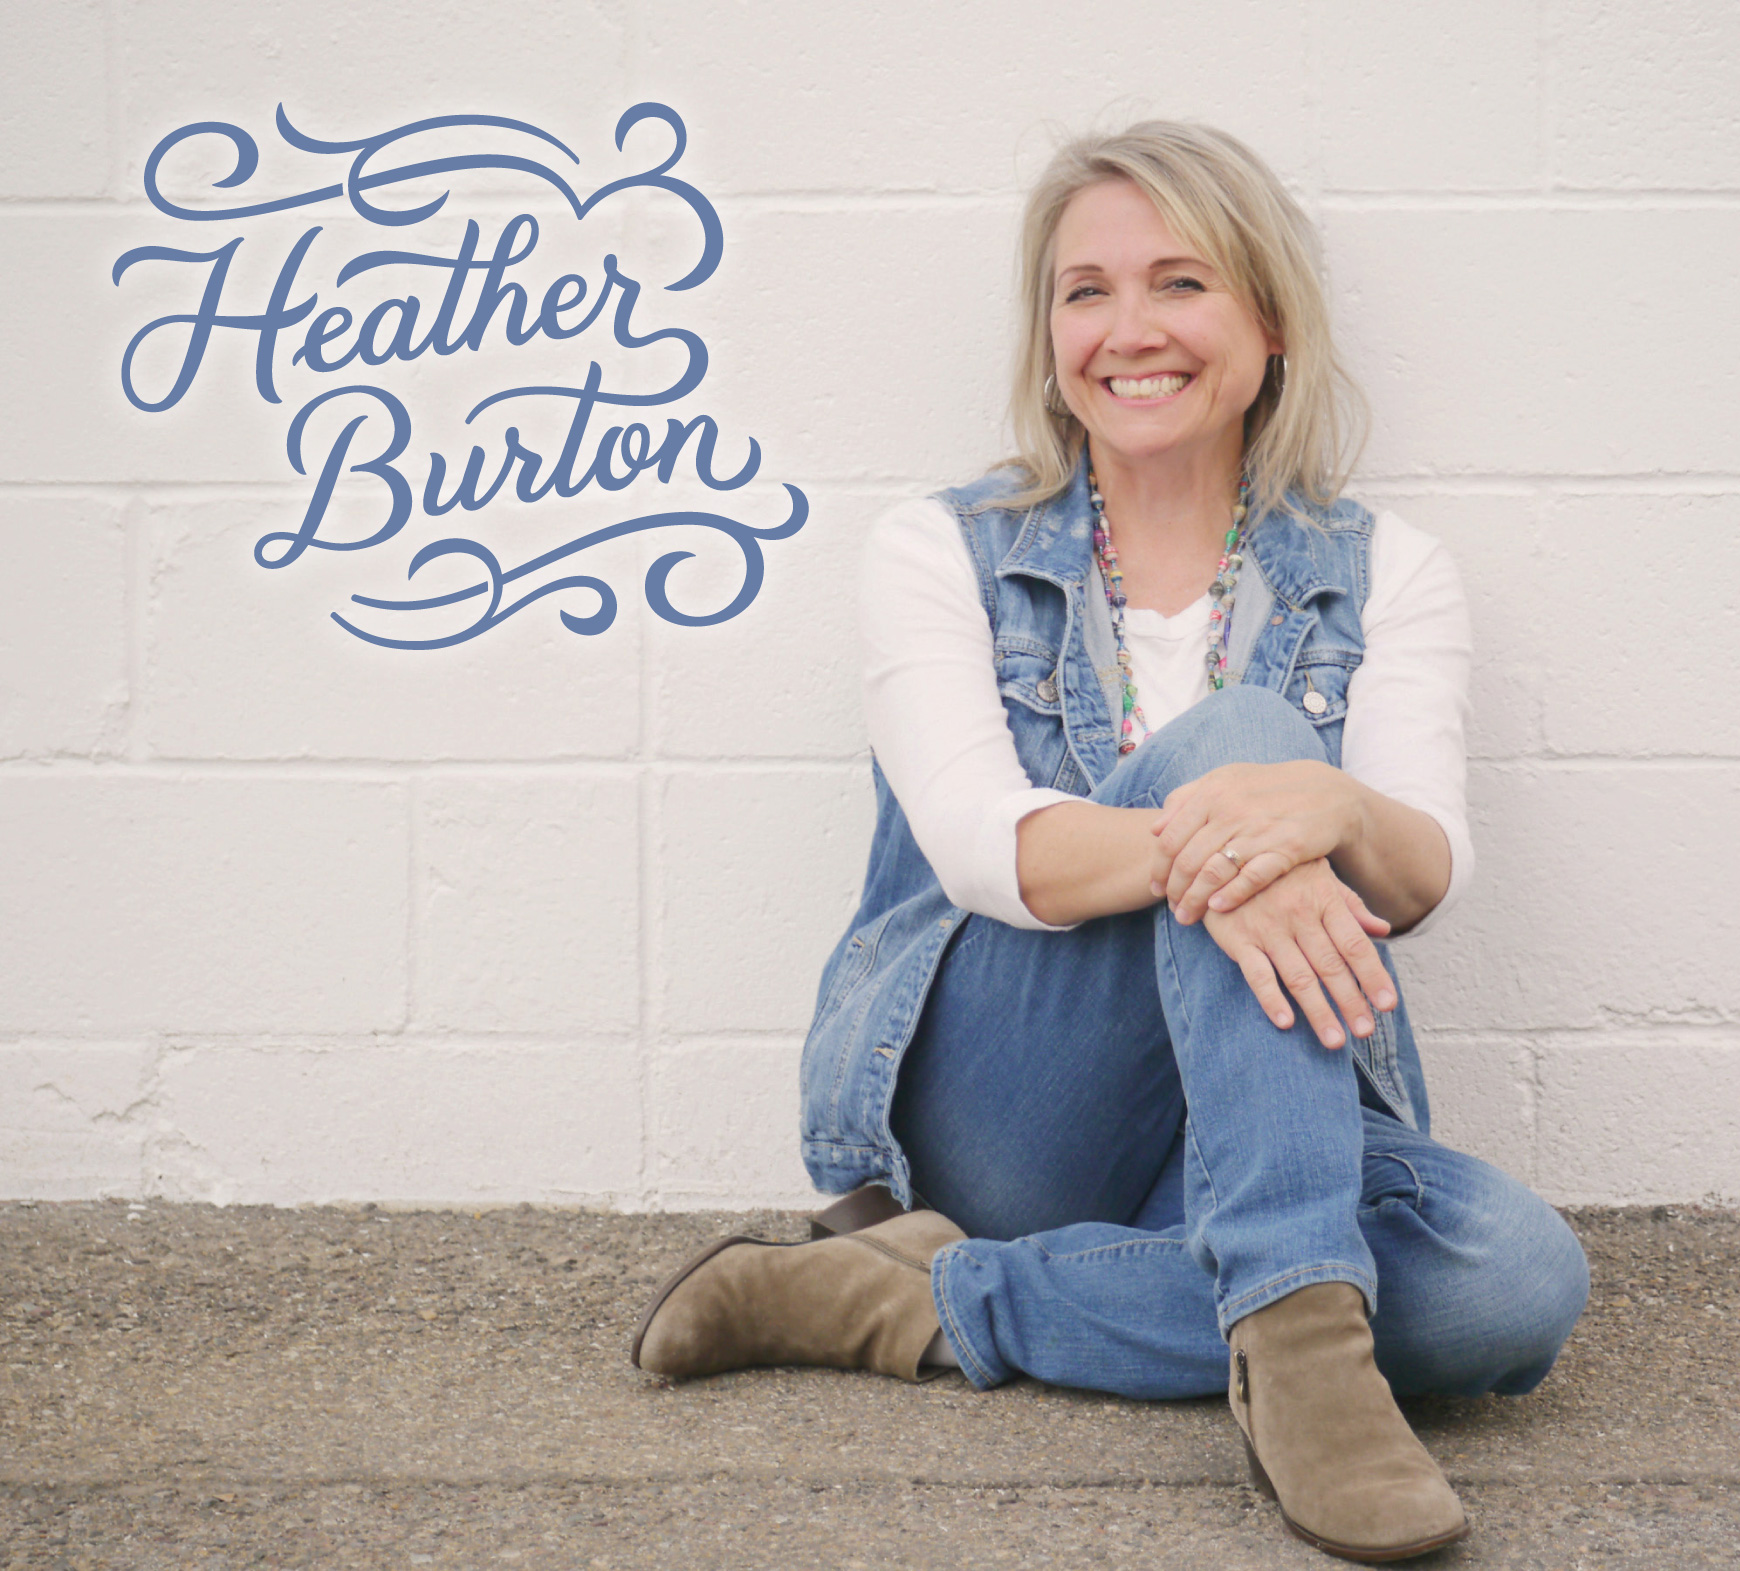 Heather-Burton-Bio.jpg